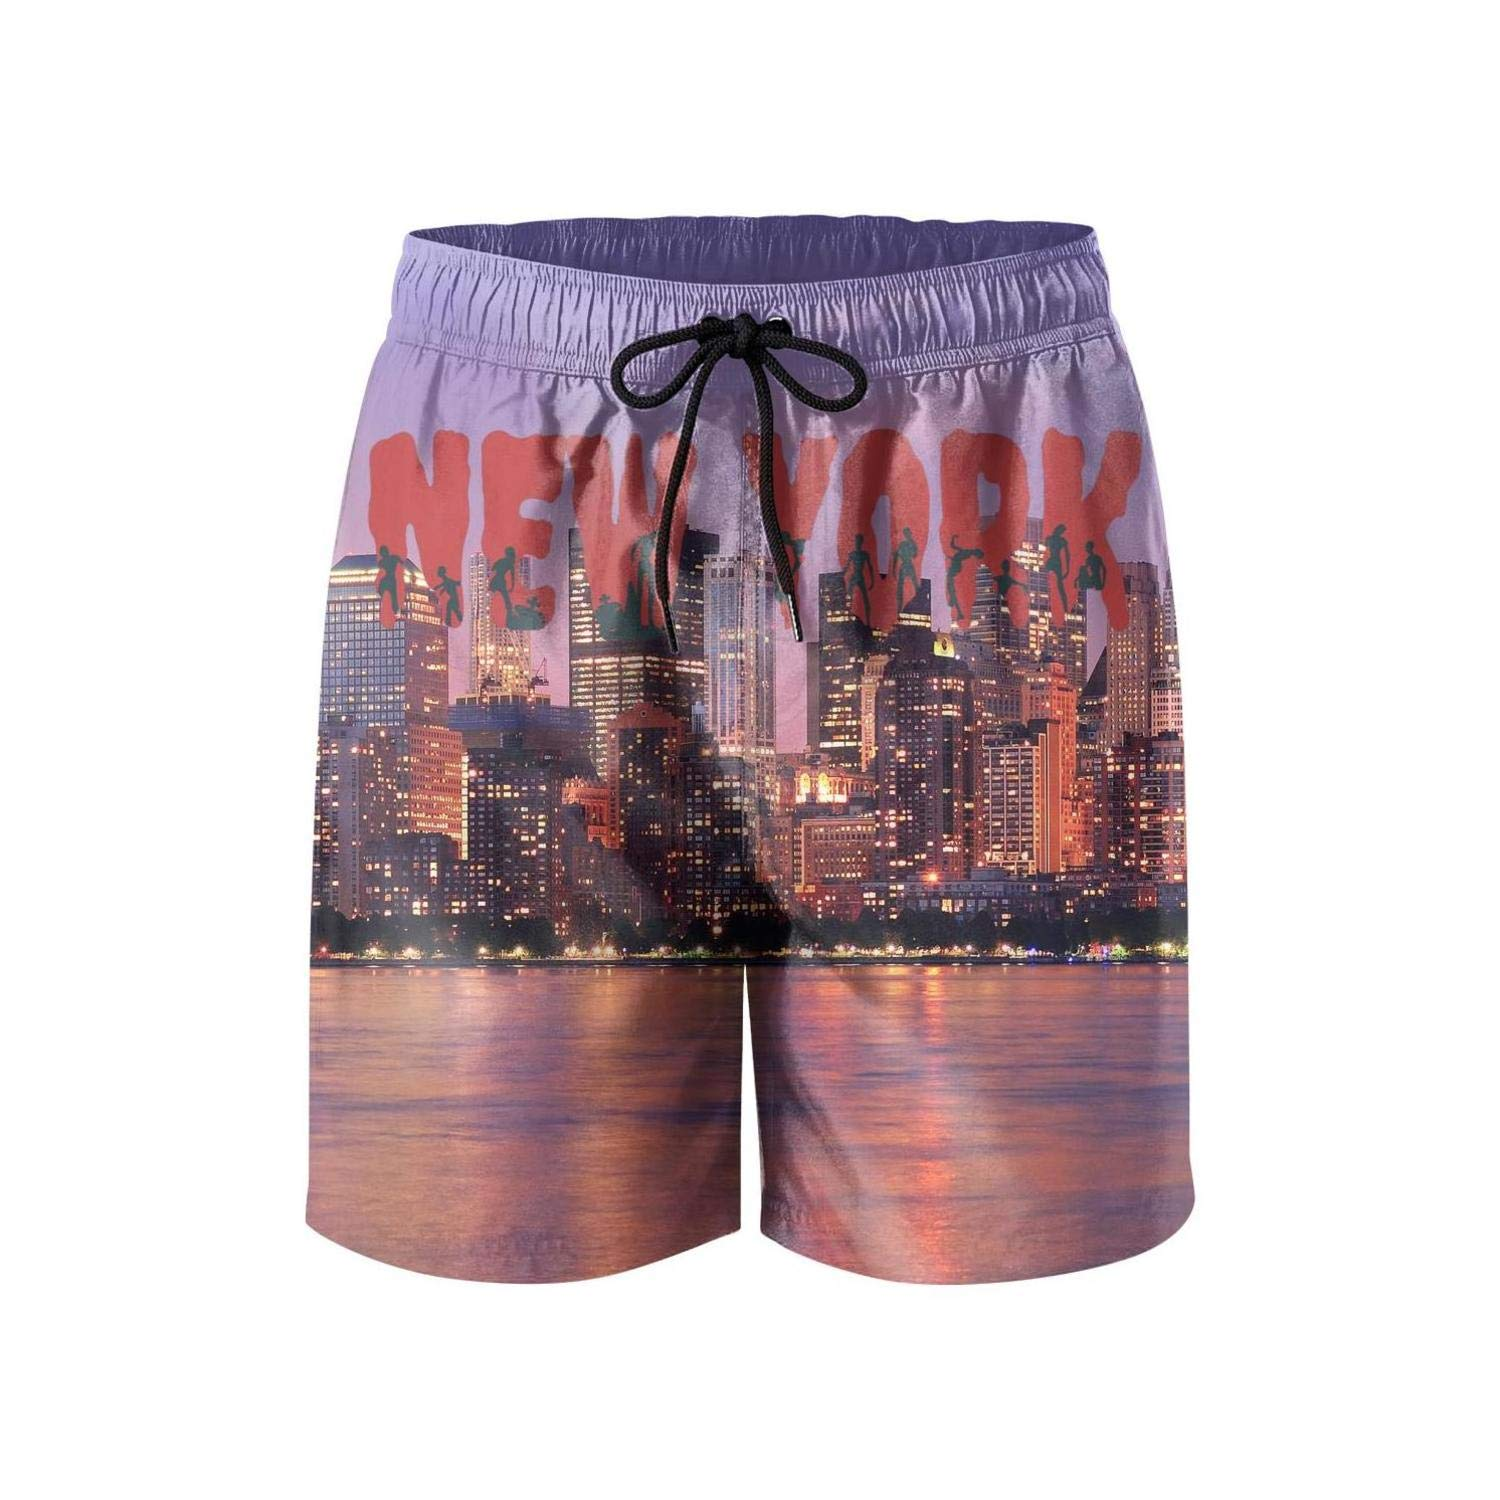 New York City Name and Silhouettes Mens Guys Surfing Shorts Summer Fashion Beach Shorts Swim